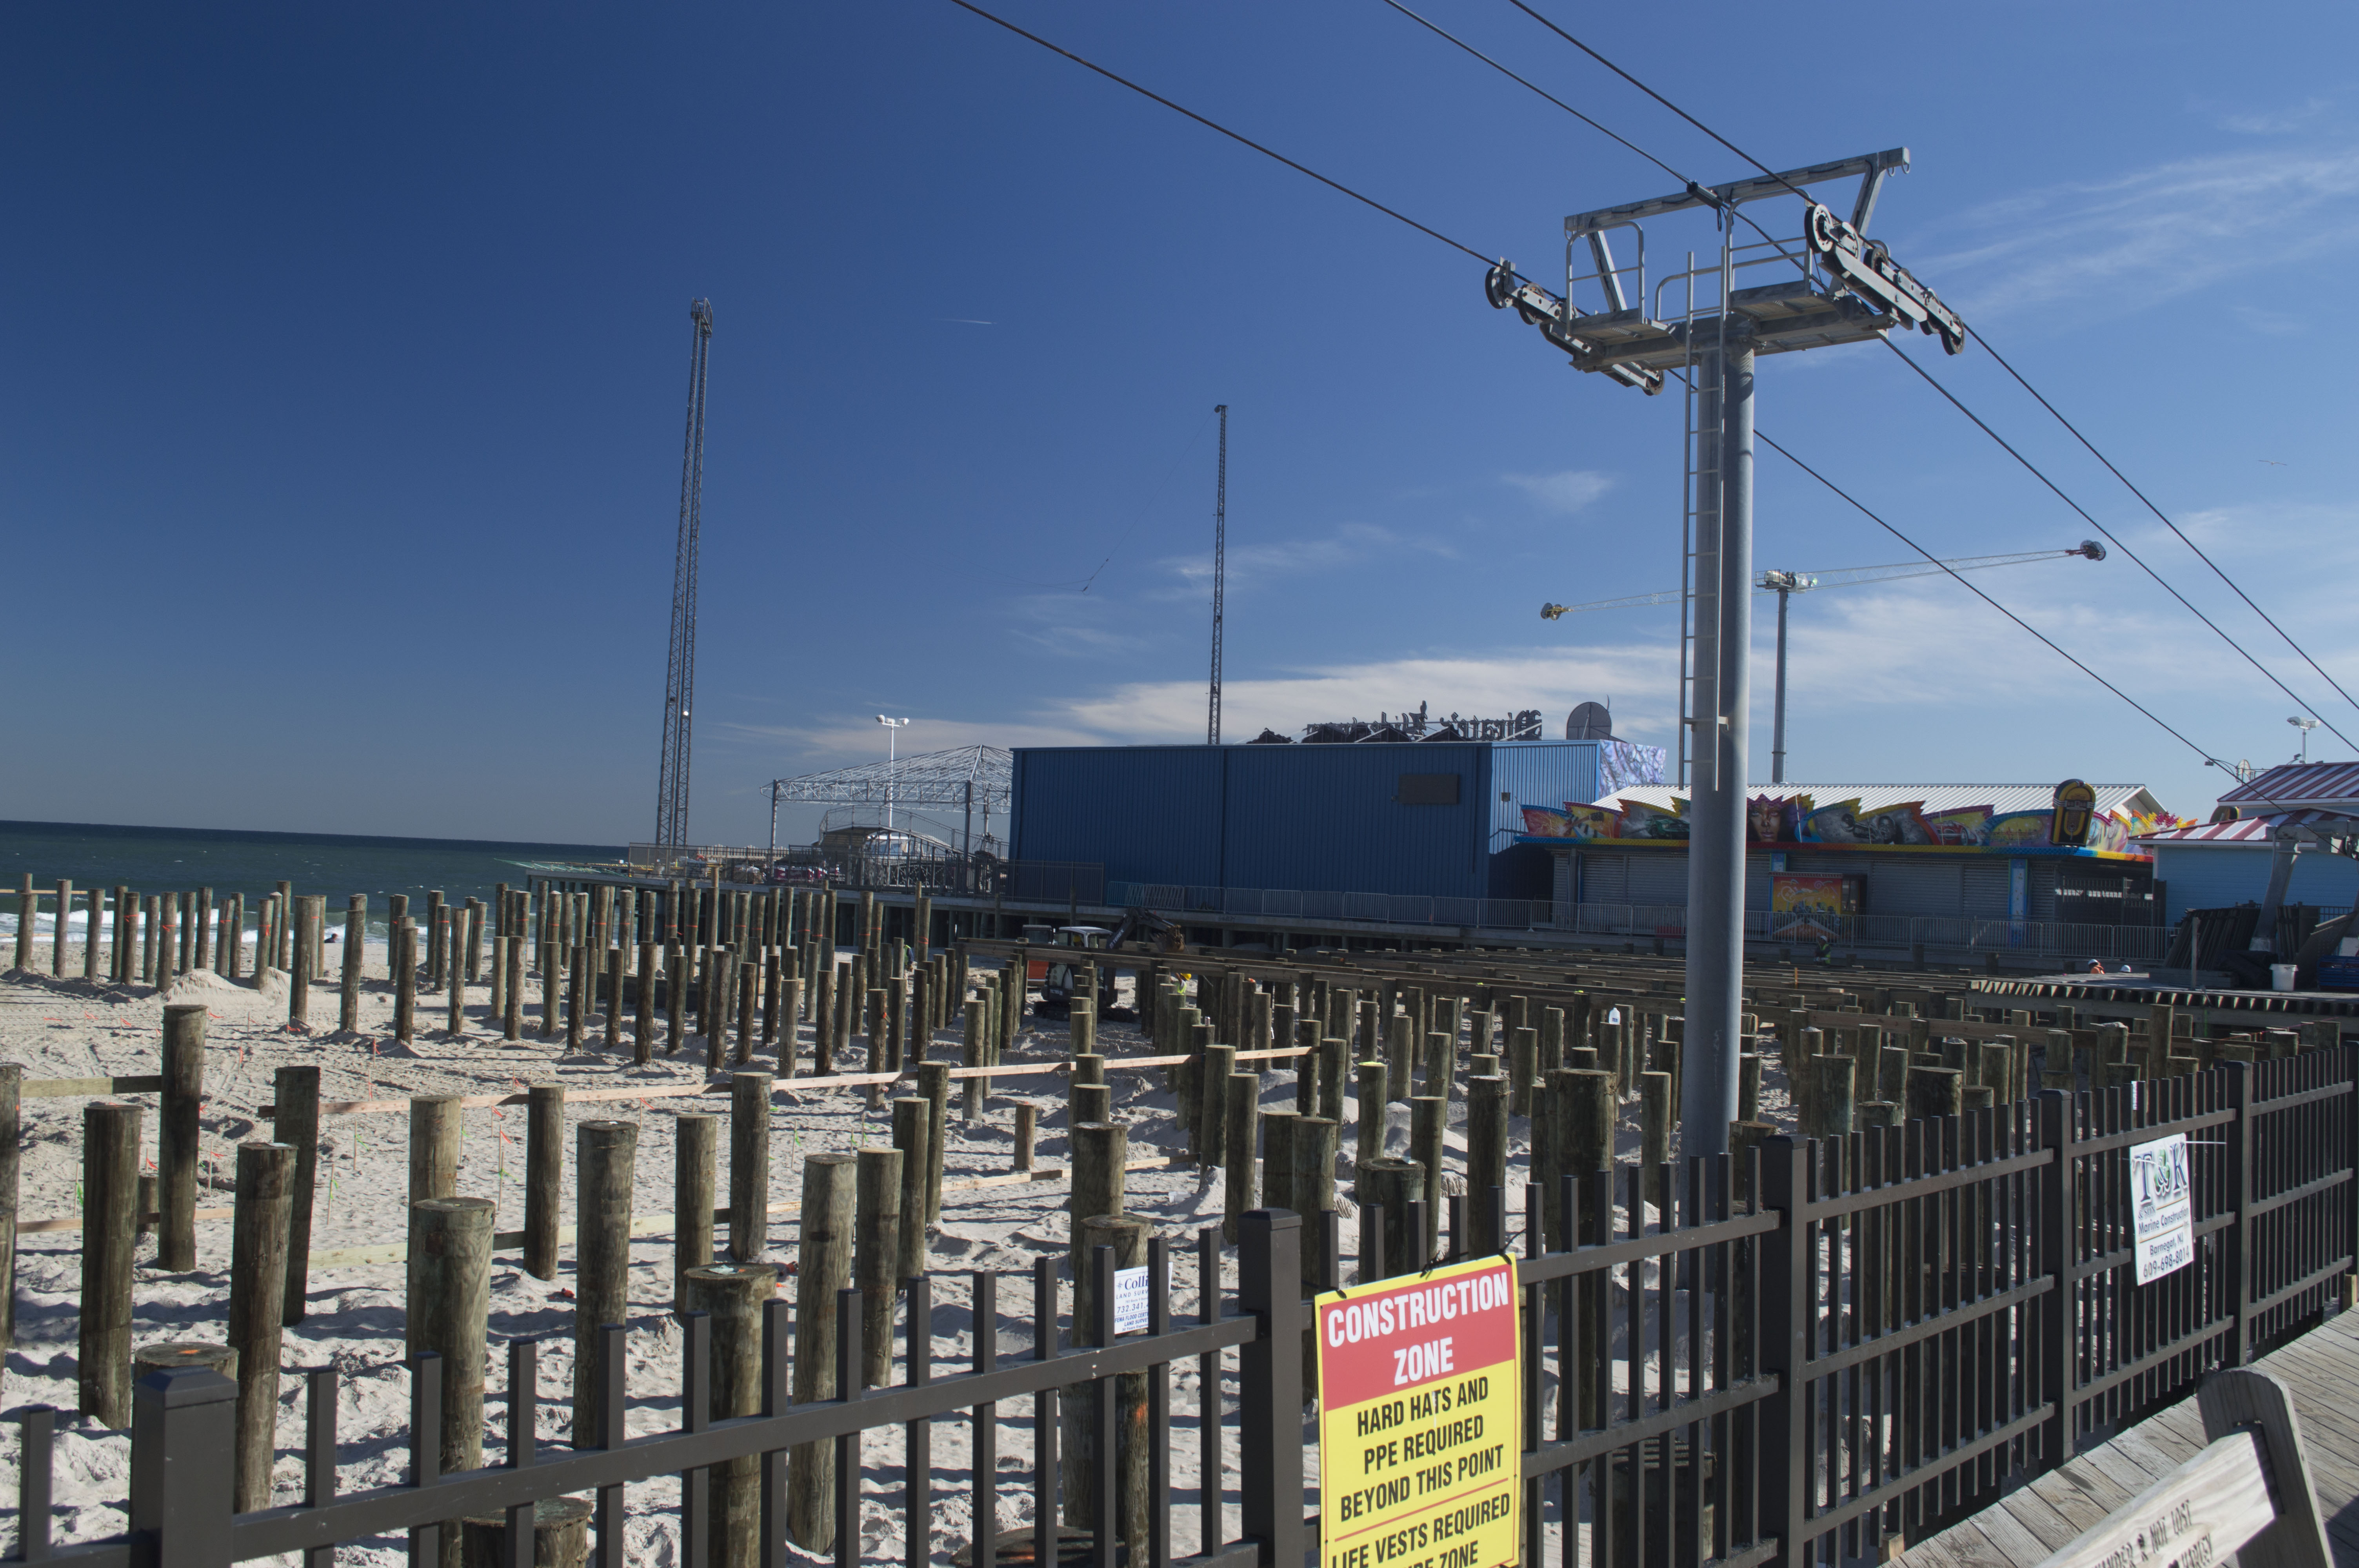 Construction on the expansion of Casino Pier, mid-October, 2016. (Photo: Daniel Nee)